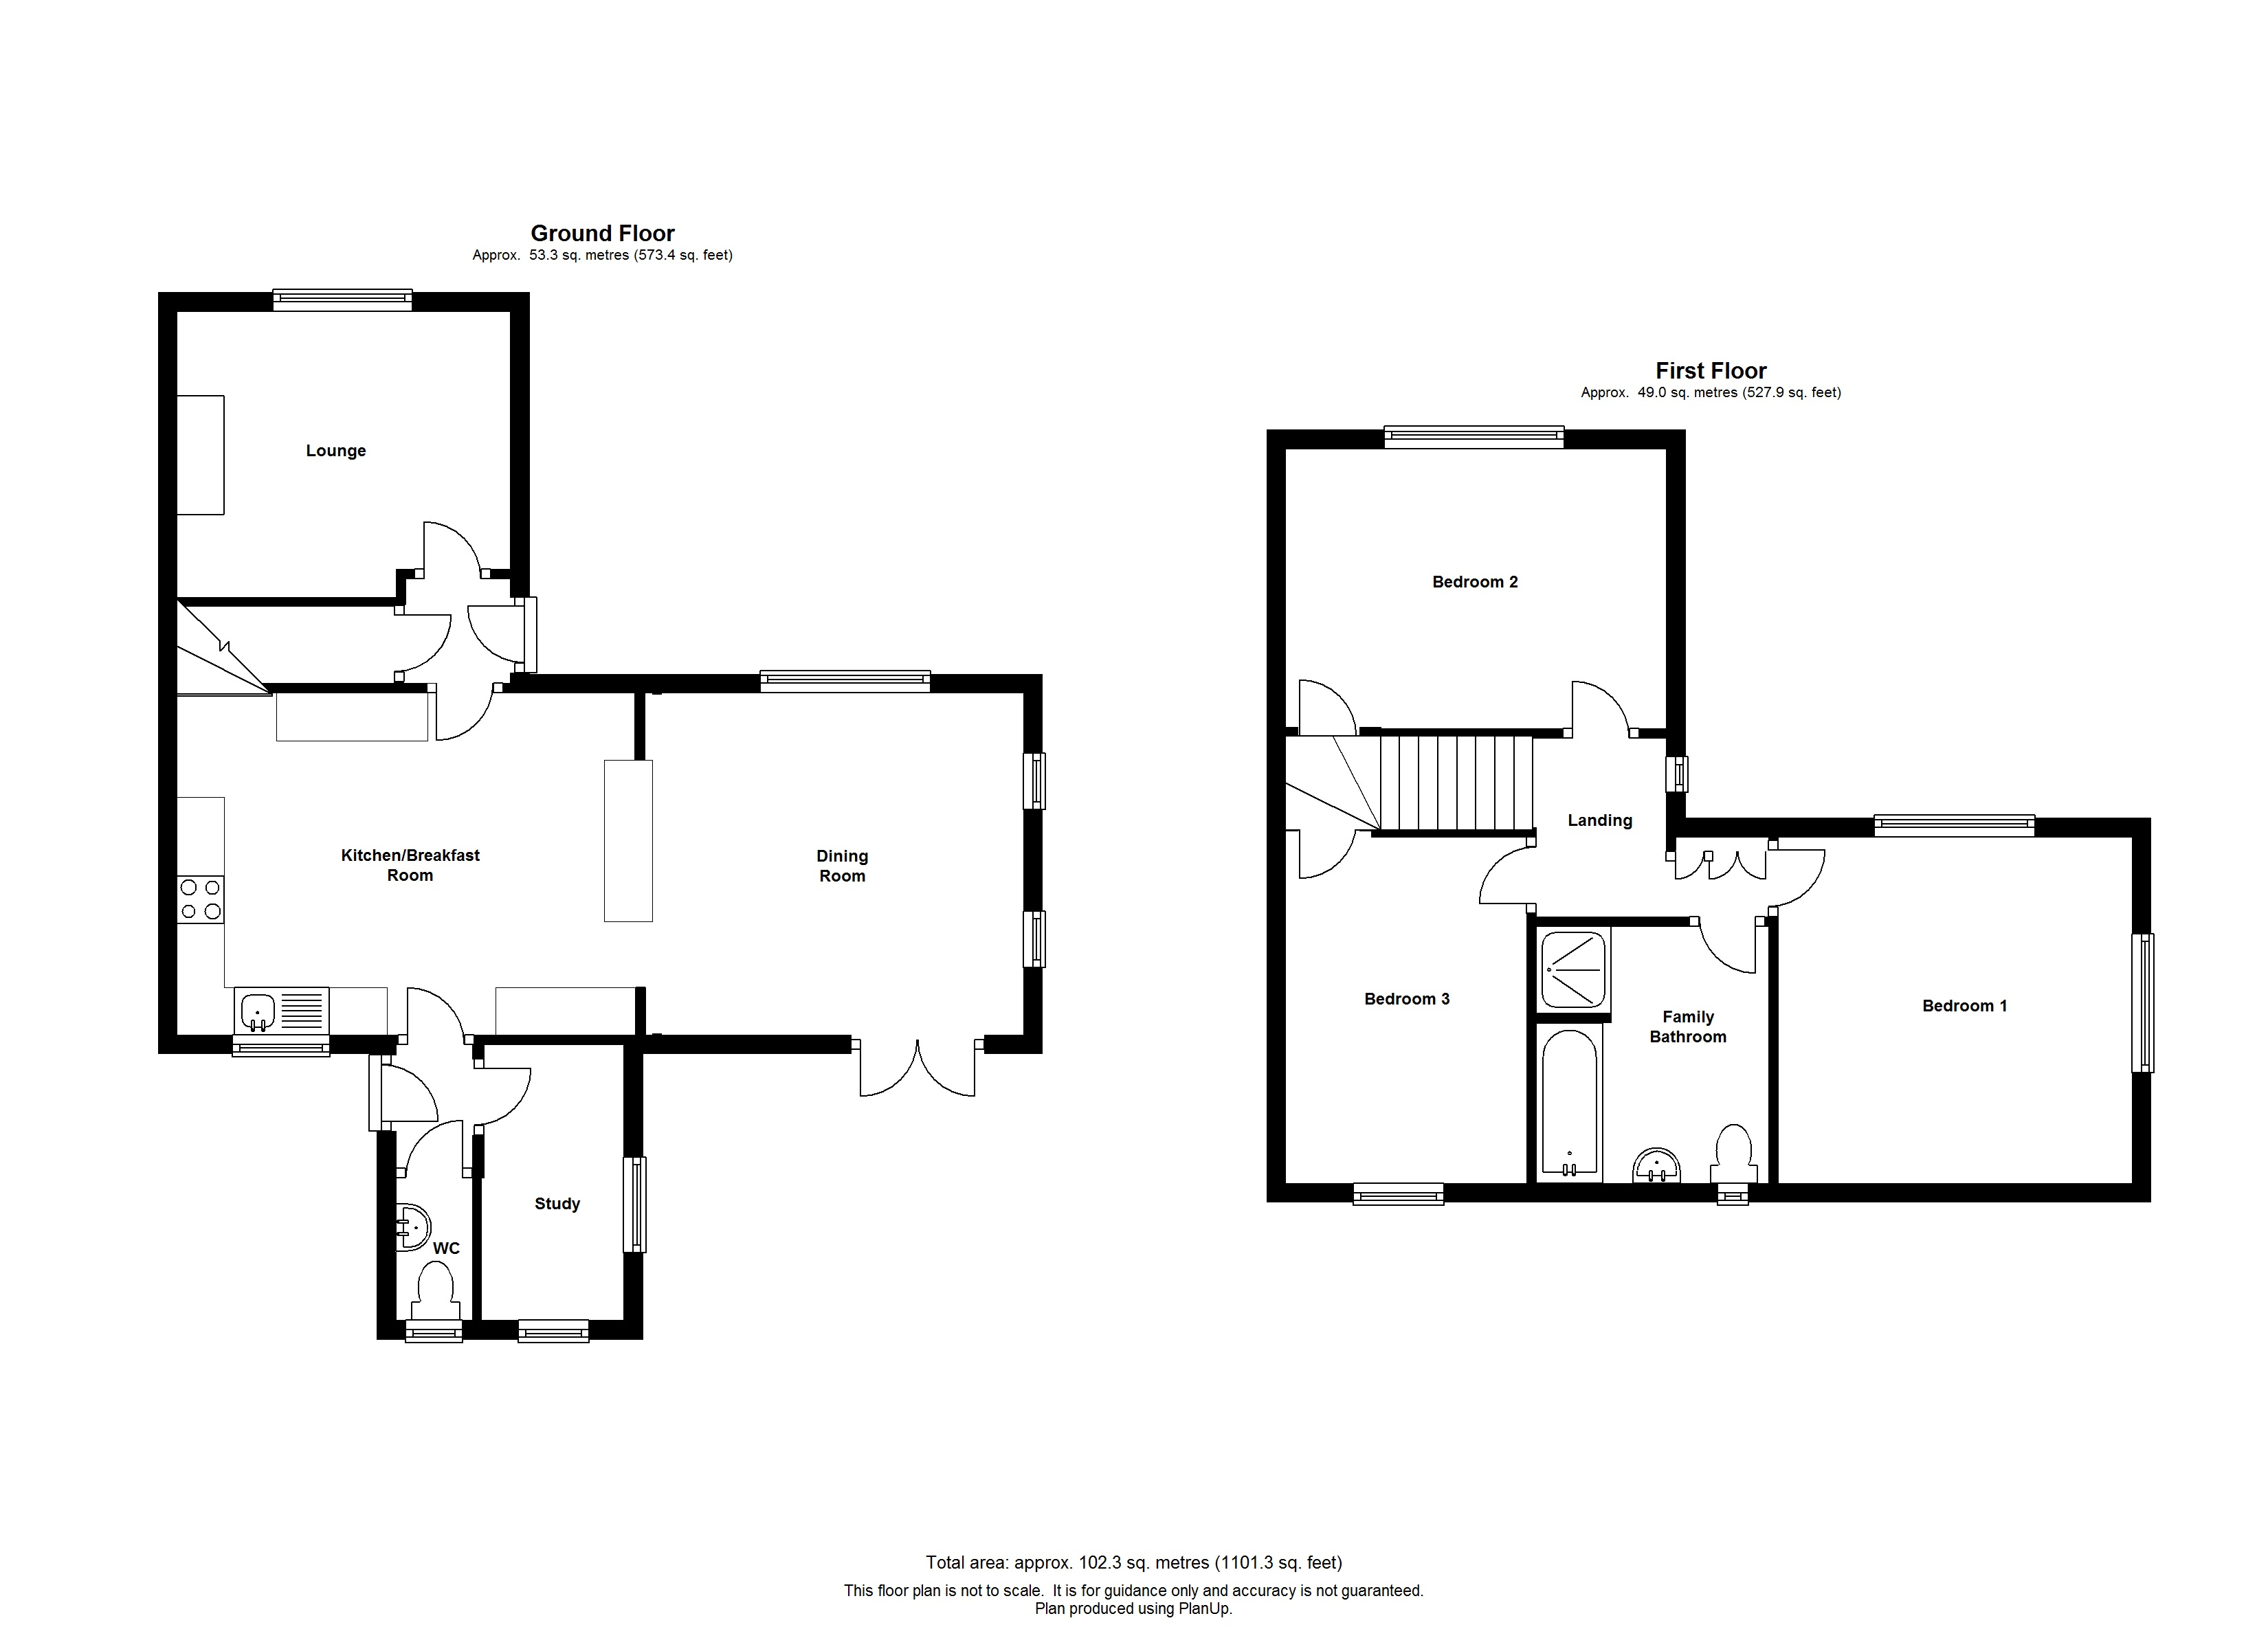 Floorplans For The Old Police House, 12 Station Road, Charing